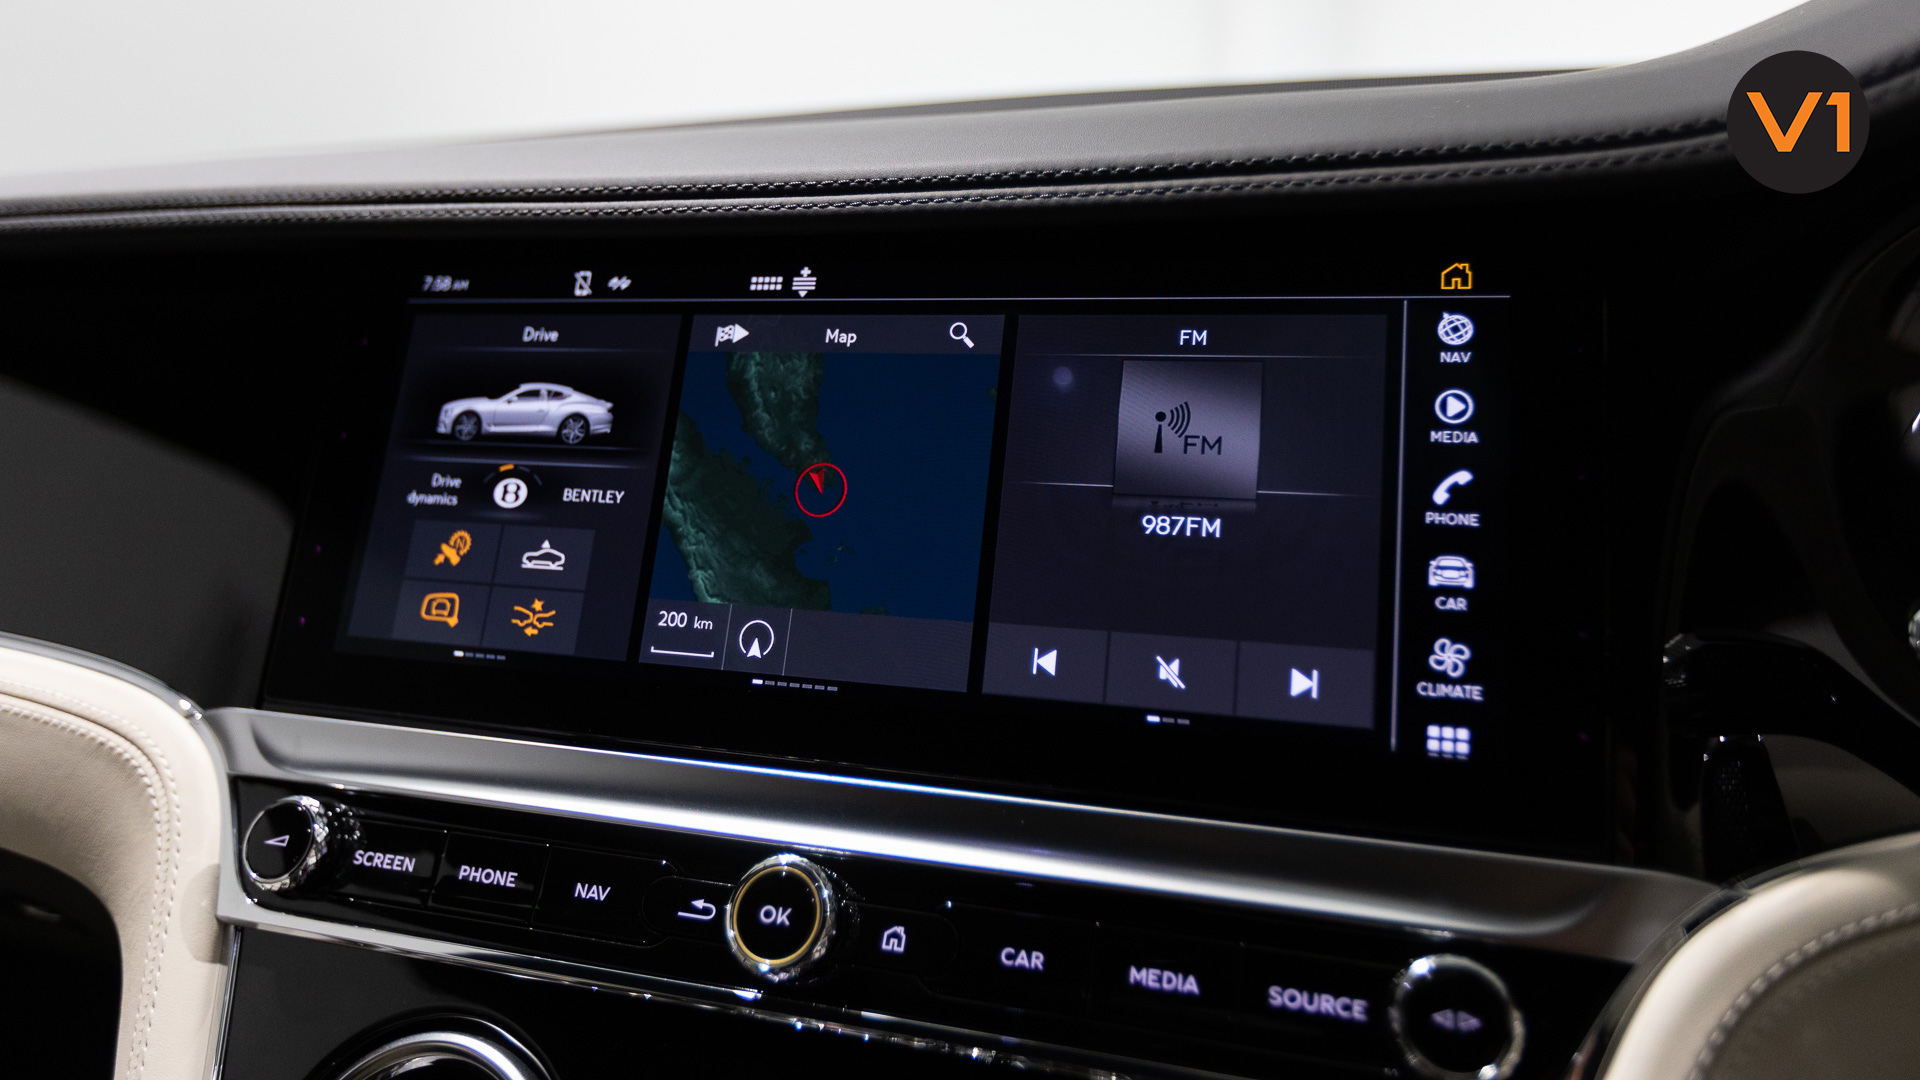 Bentley Continental GT Coupe V8 (Glacier White) - Infotainment